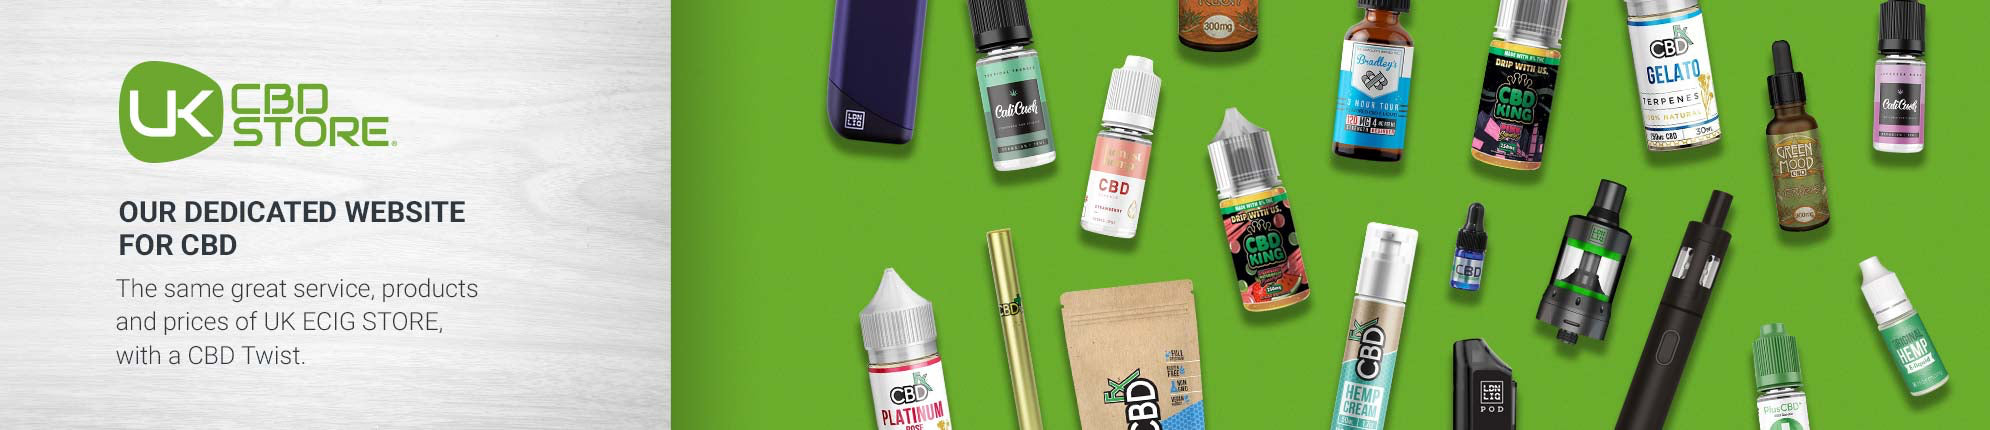 UK CBD Store - our sister site